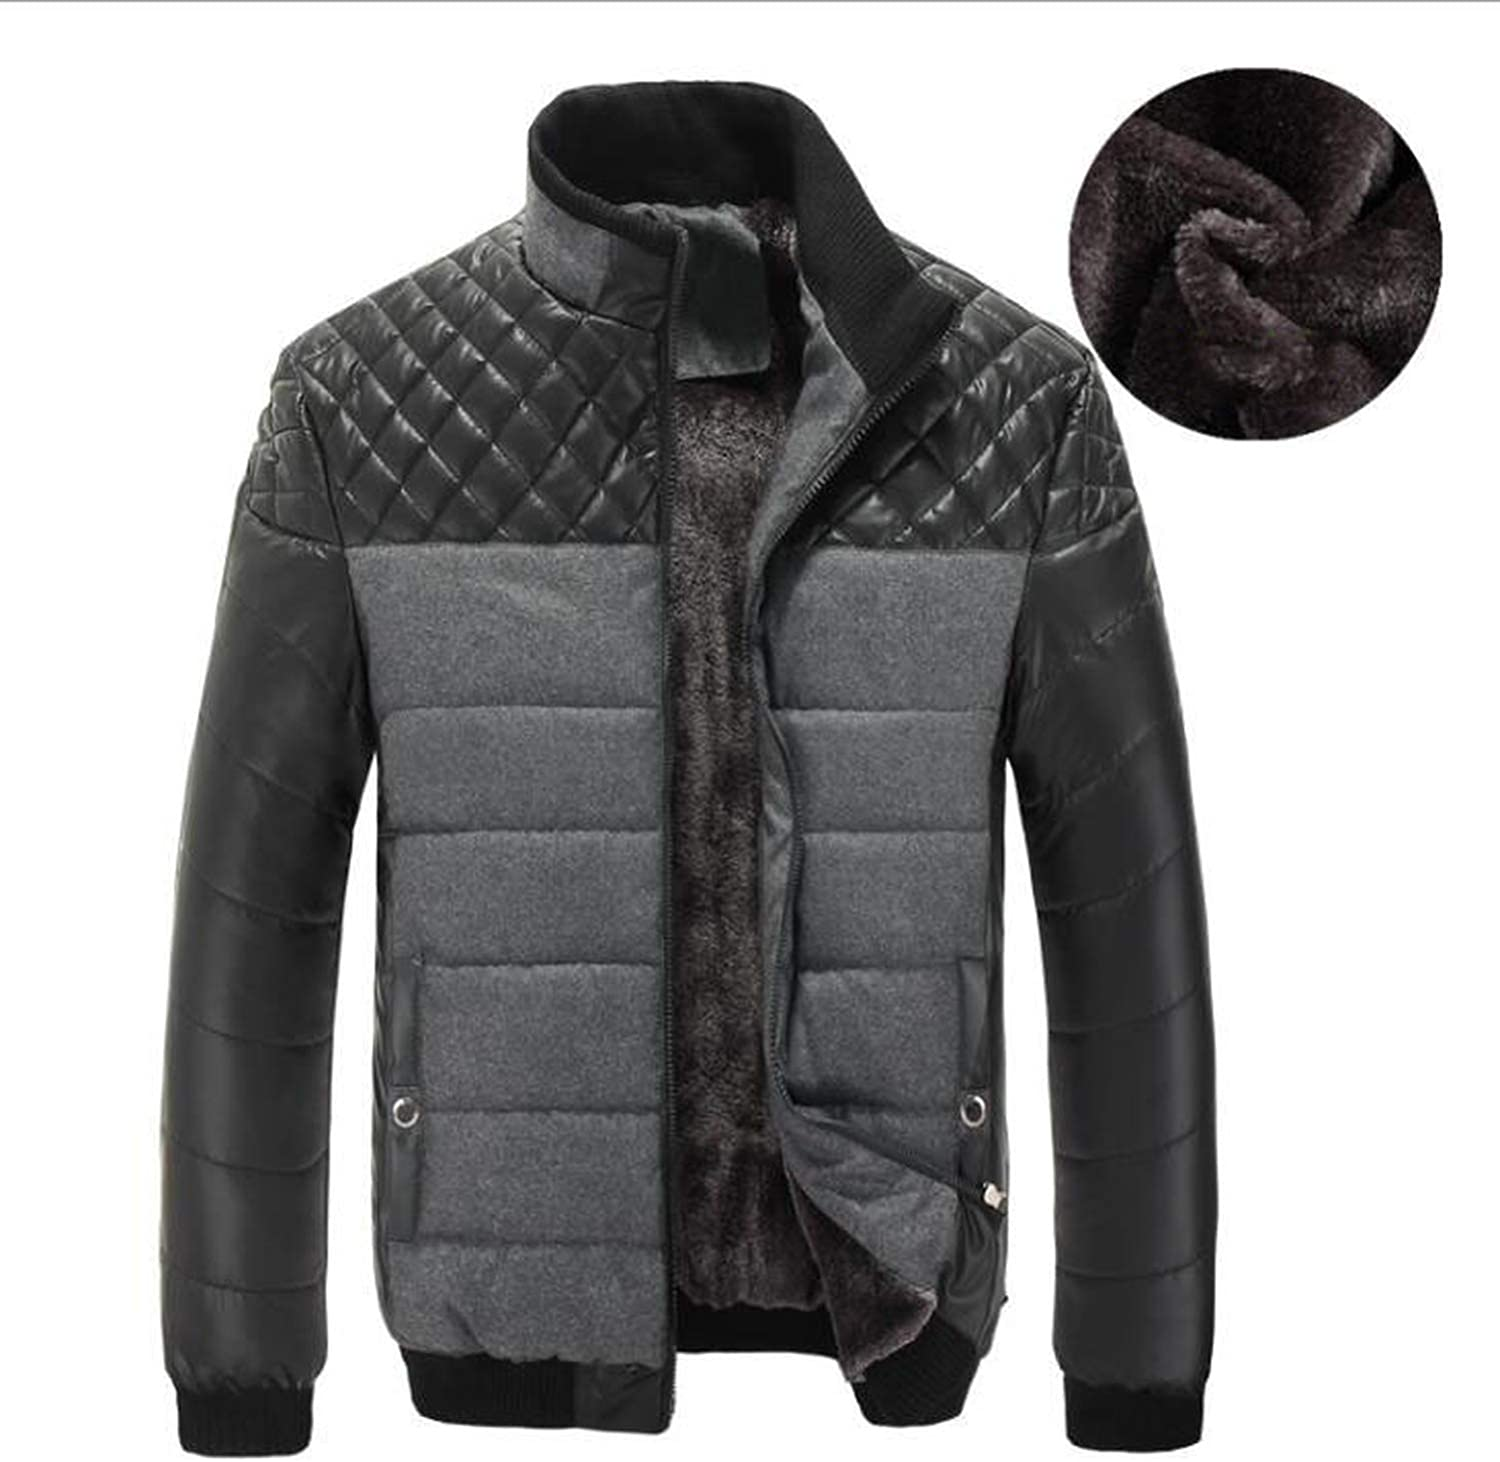 Little Adam Fashion coat Winter Men Cotton-Padded Jackets Mens Casual Jackets Thicken Coats Overcoat Warm Clothing